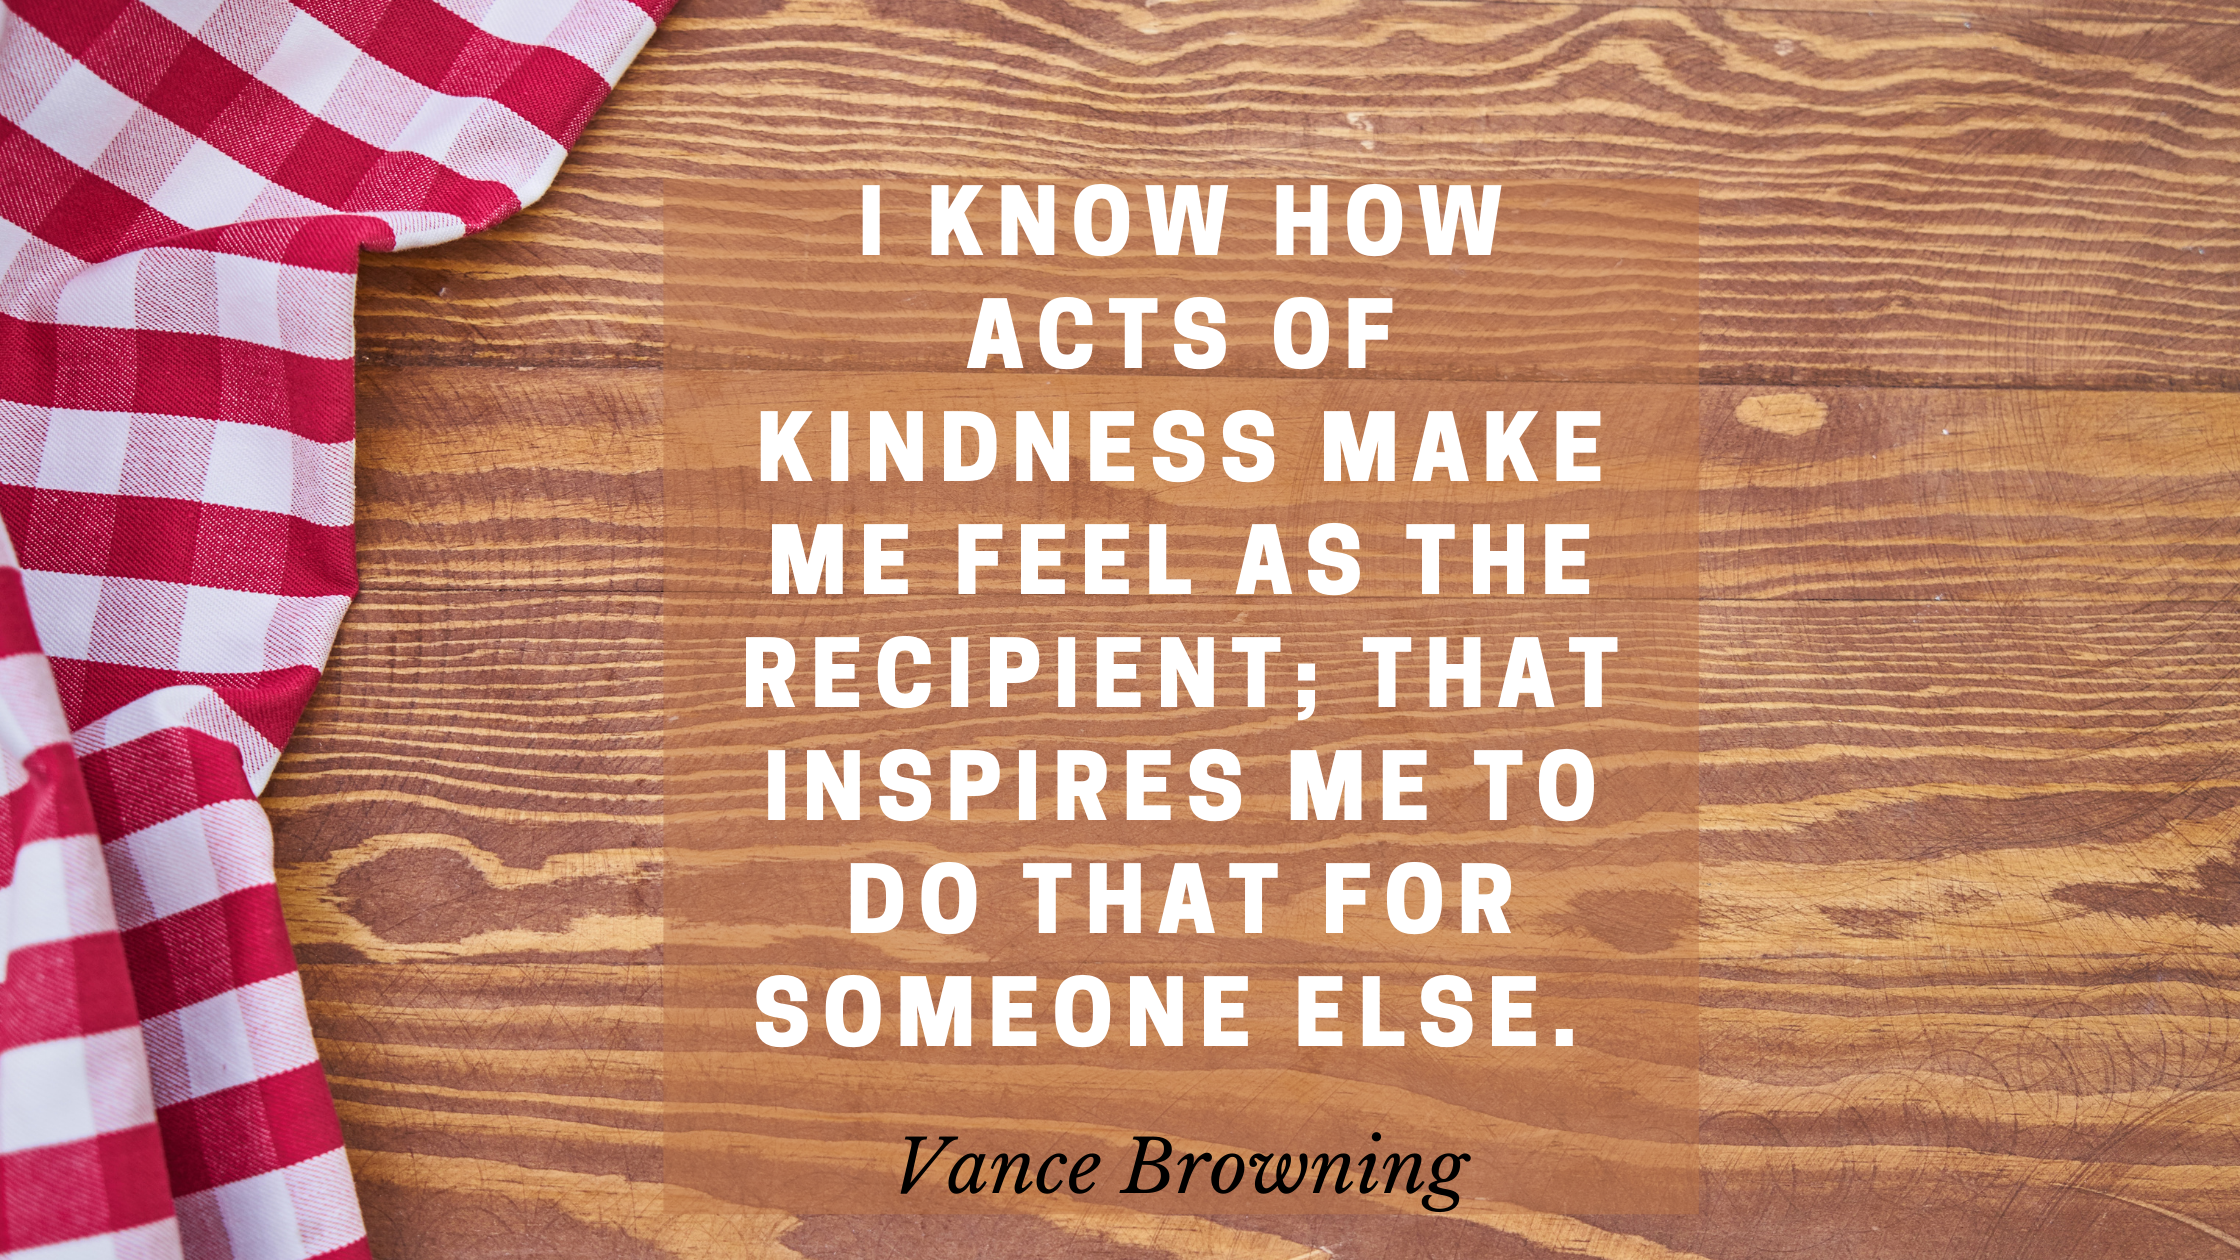 I know how acts of kindness make me feel as the recipient; that inspires me to do that for someone else.